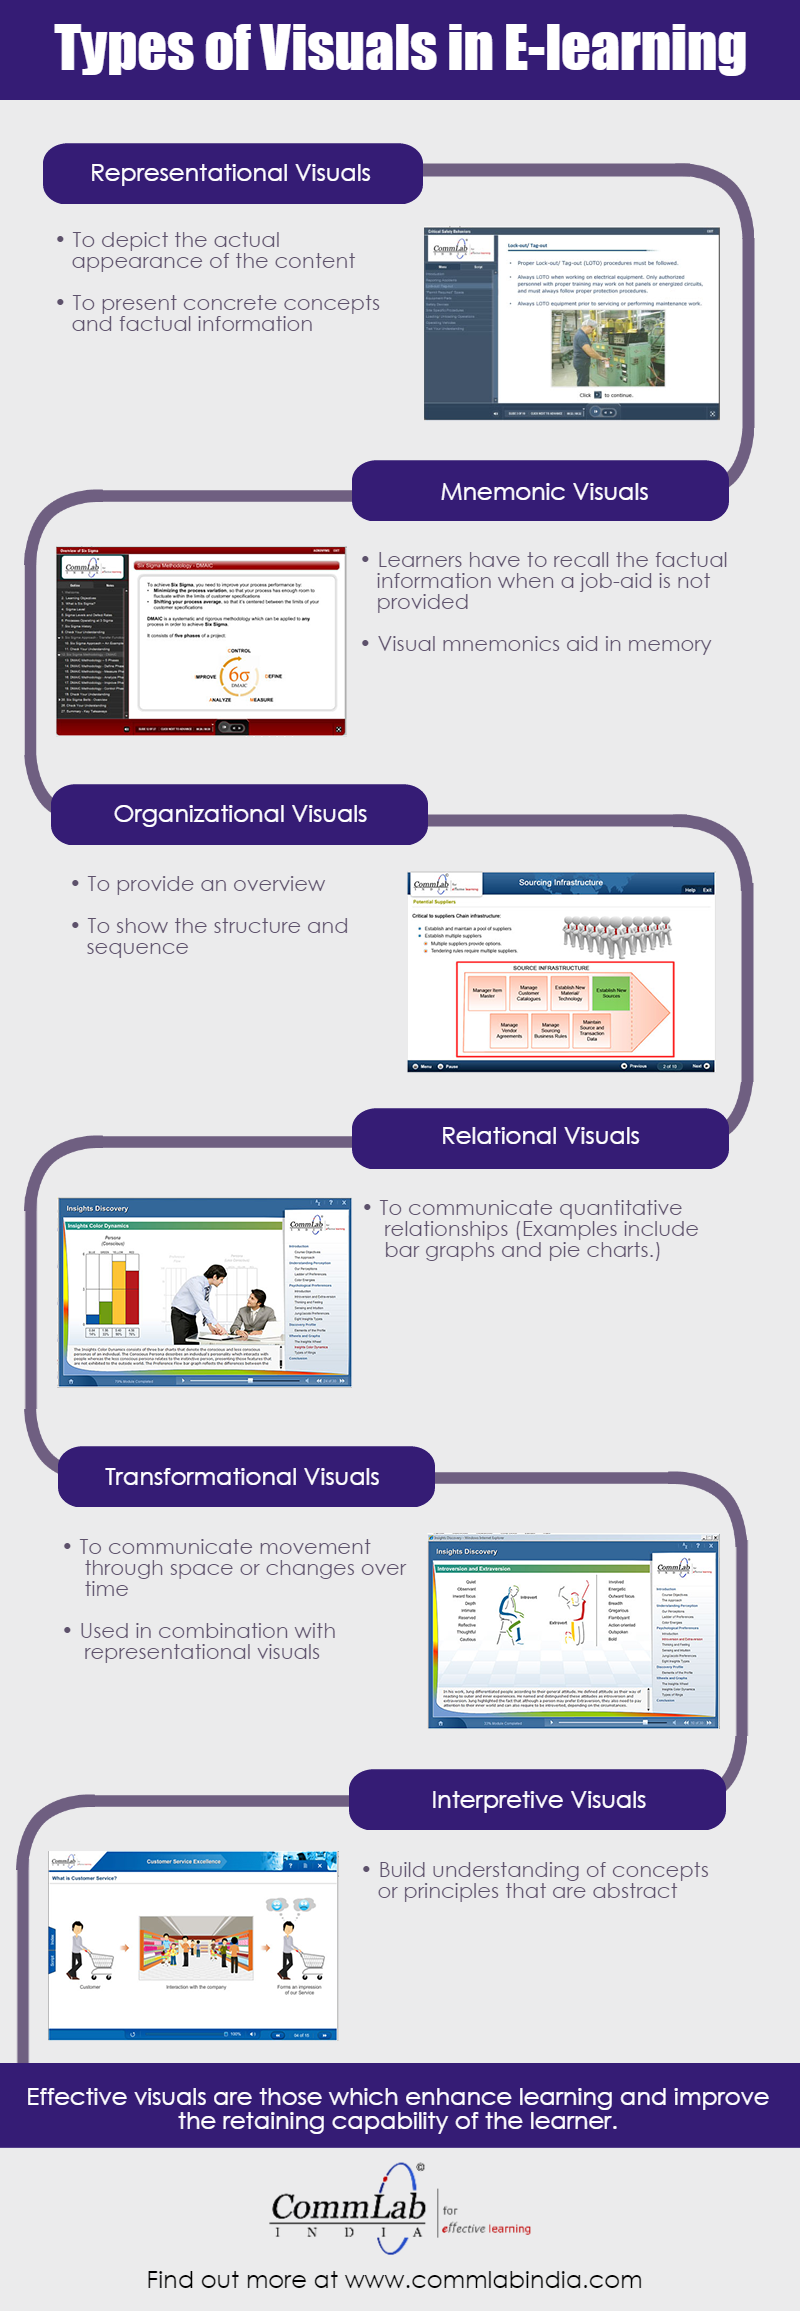 Types of Visuals in E-learning – An Infographic